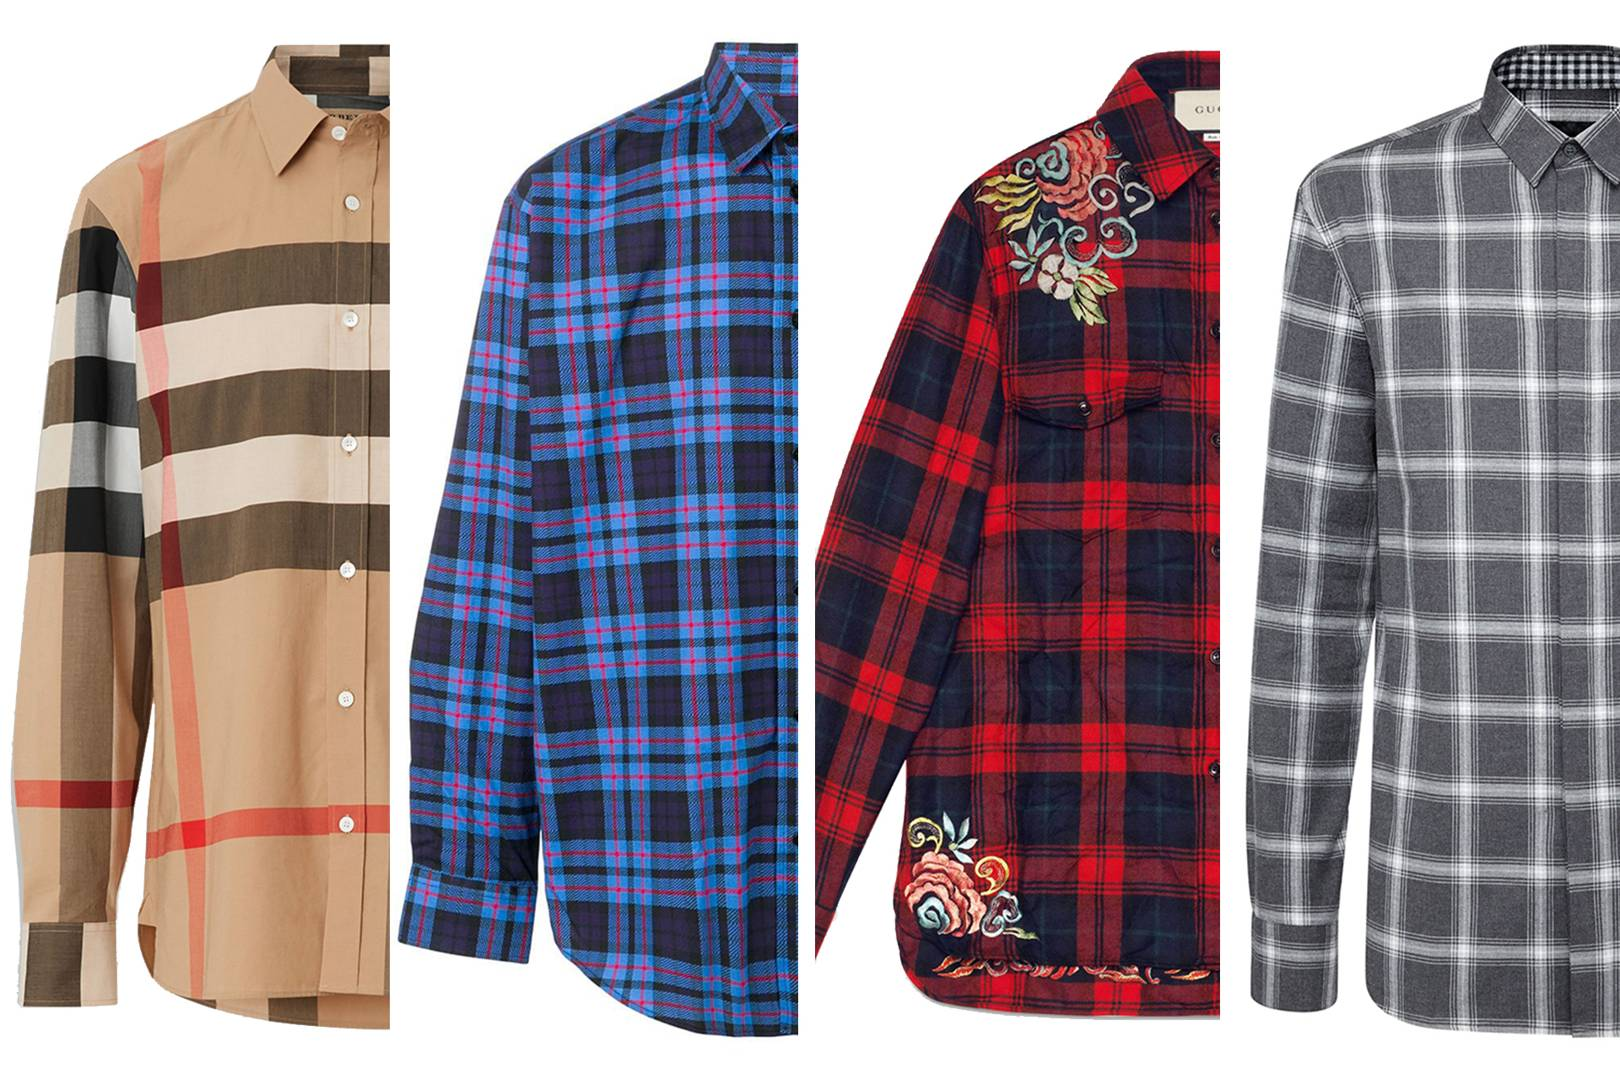 7413d45d5 The checked shirt is this seasons must have